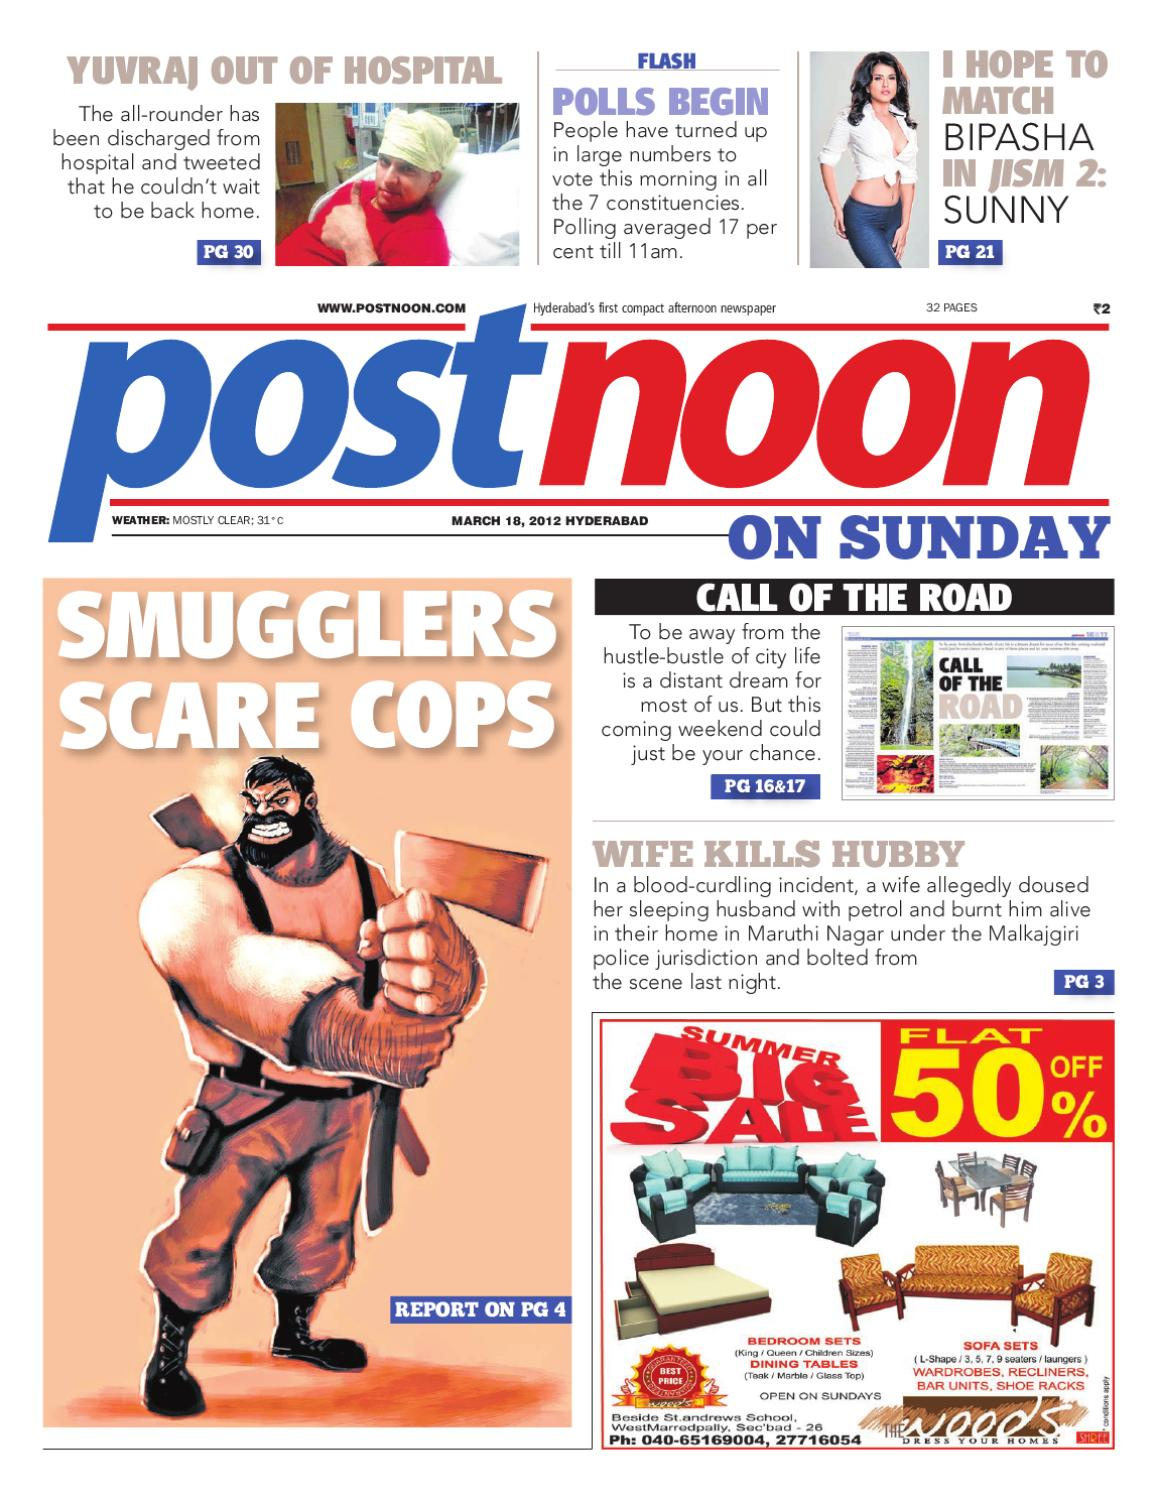 Postnoon E-Paper for 18 March 2012 by Scribble Media & Entertainment